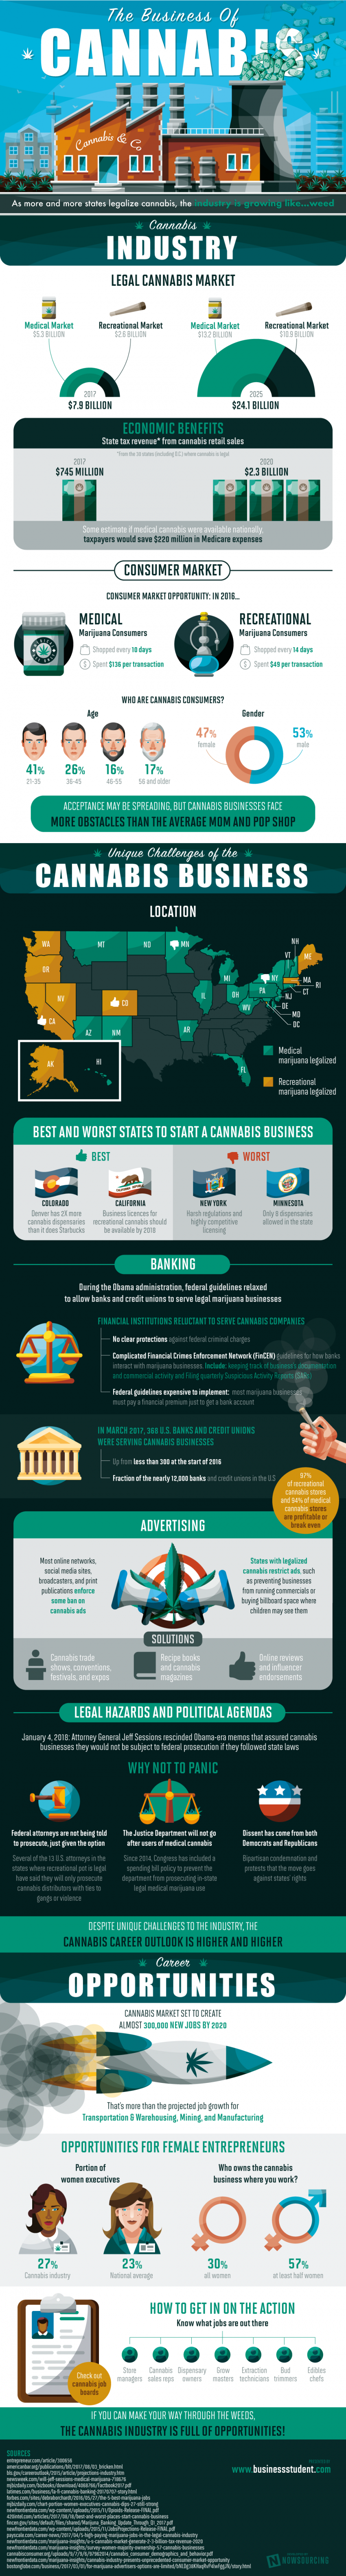 The State of the Legalized Marijuana Industry in the US Today (INFOGRAPHIC)